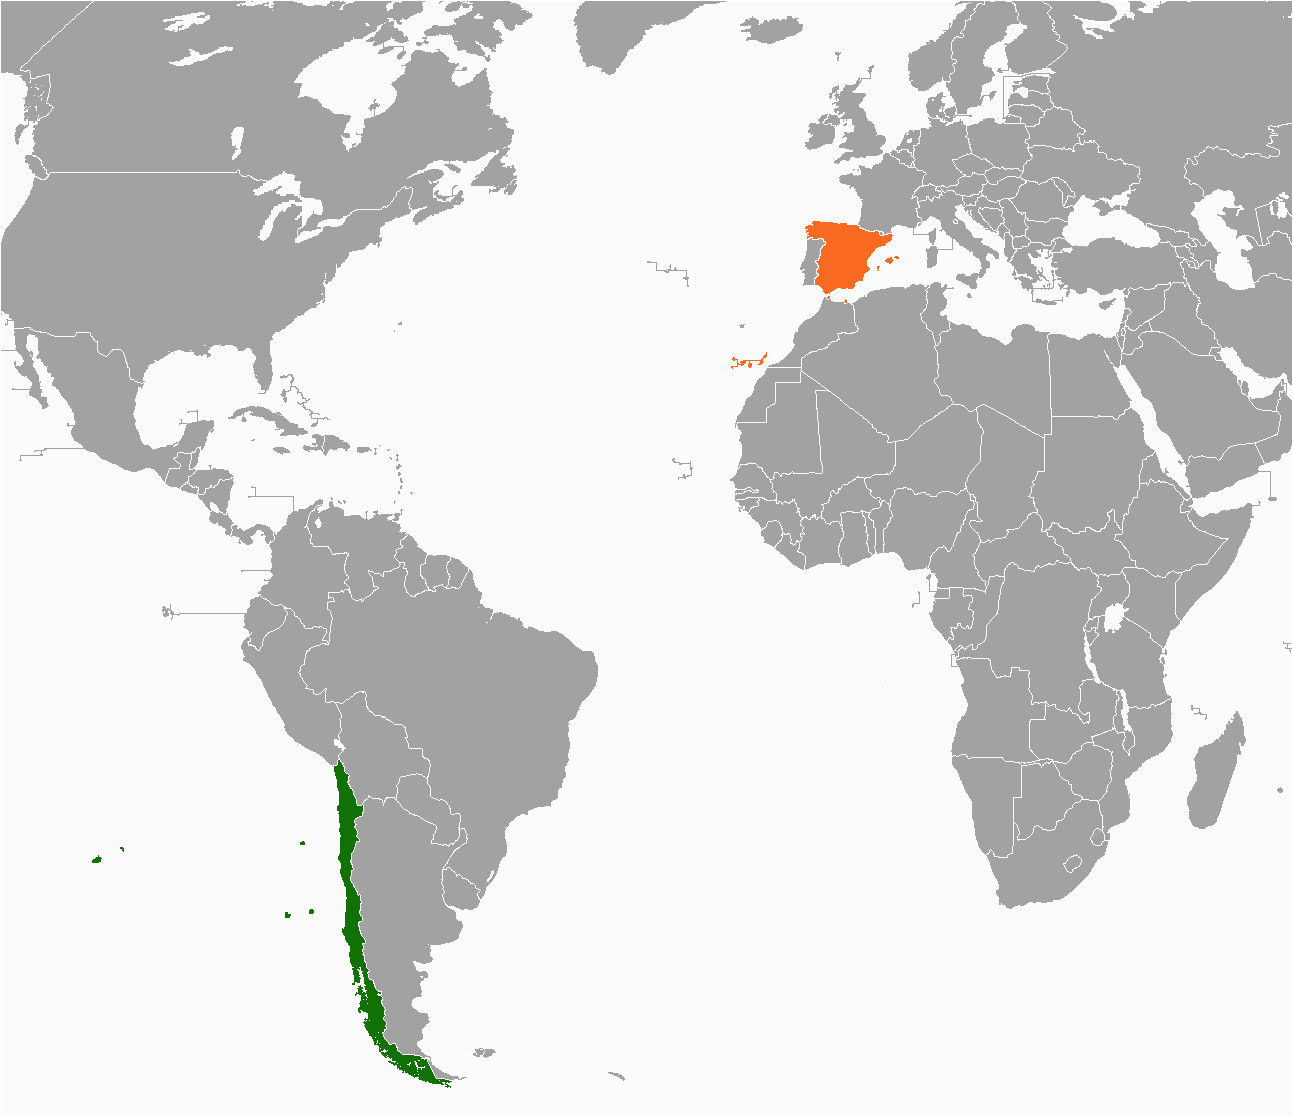 chile spain relations wikipedia